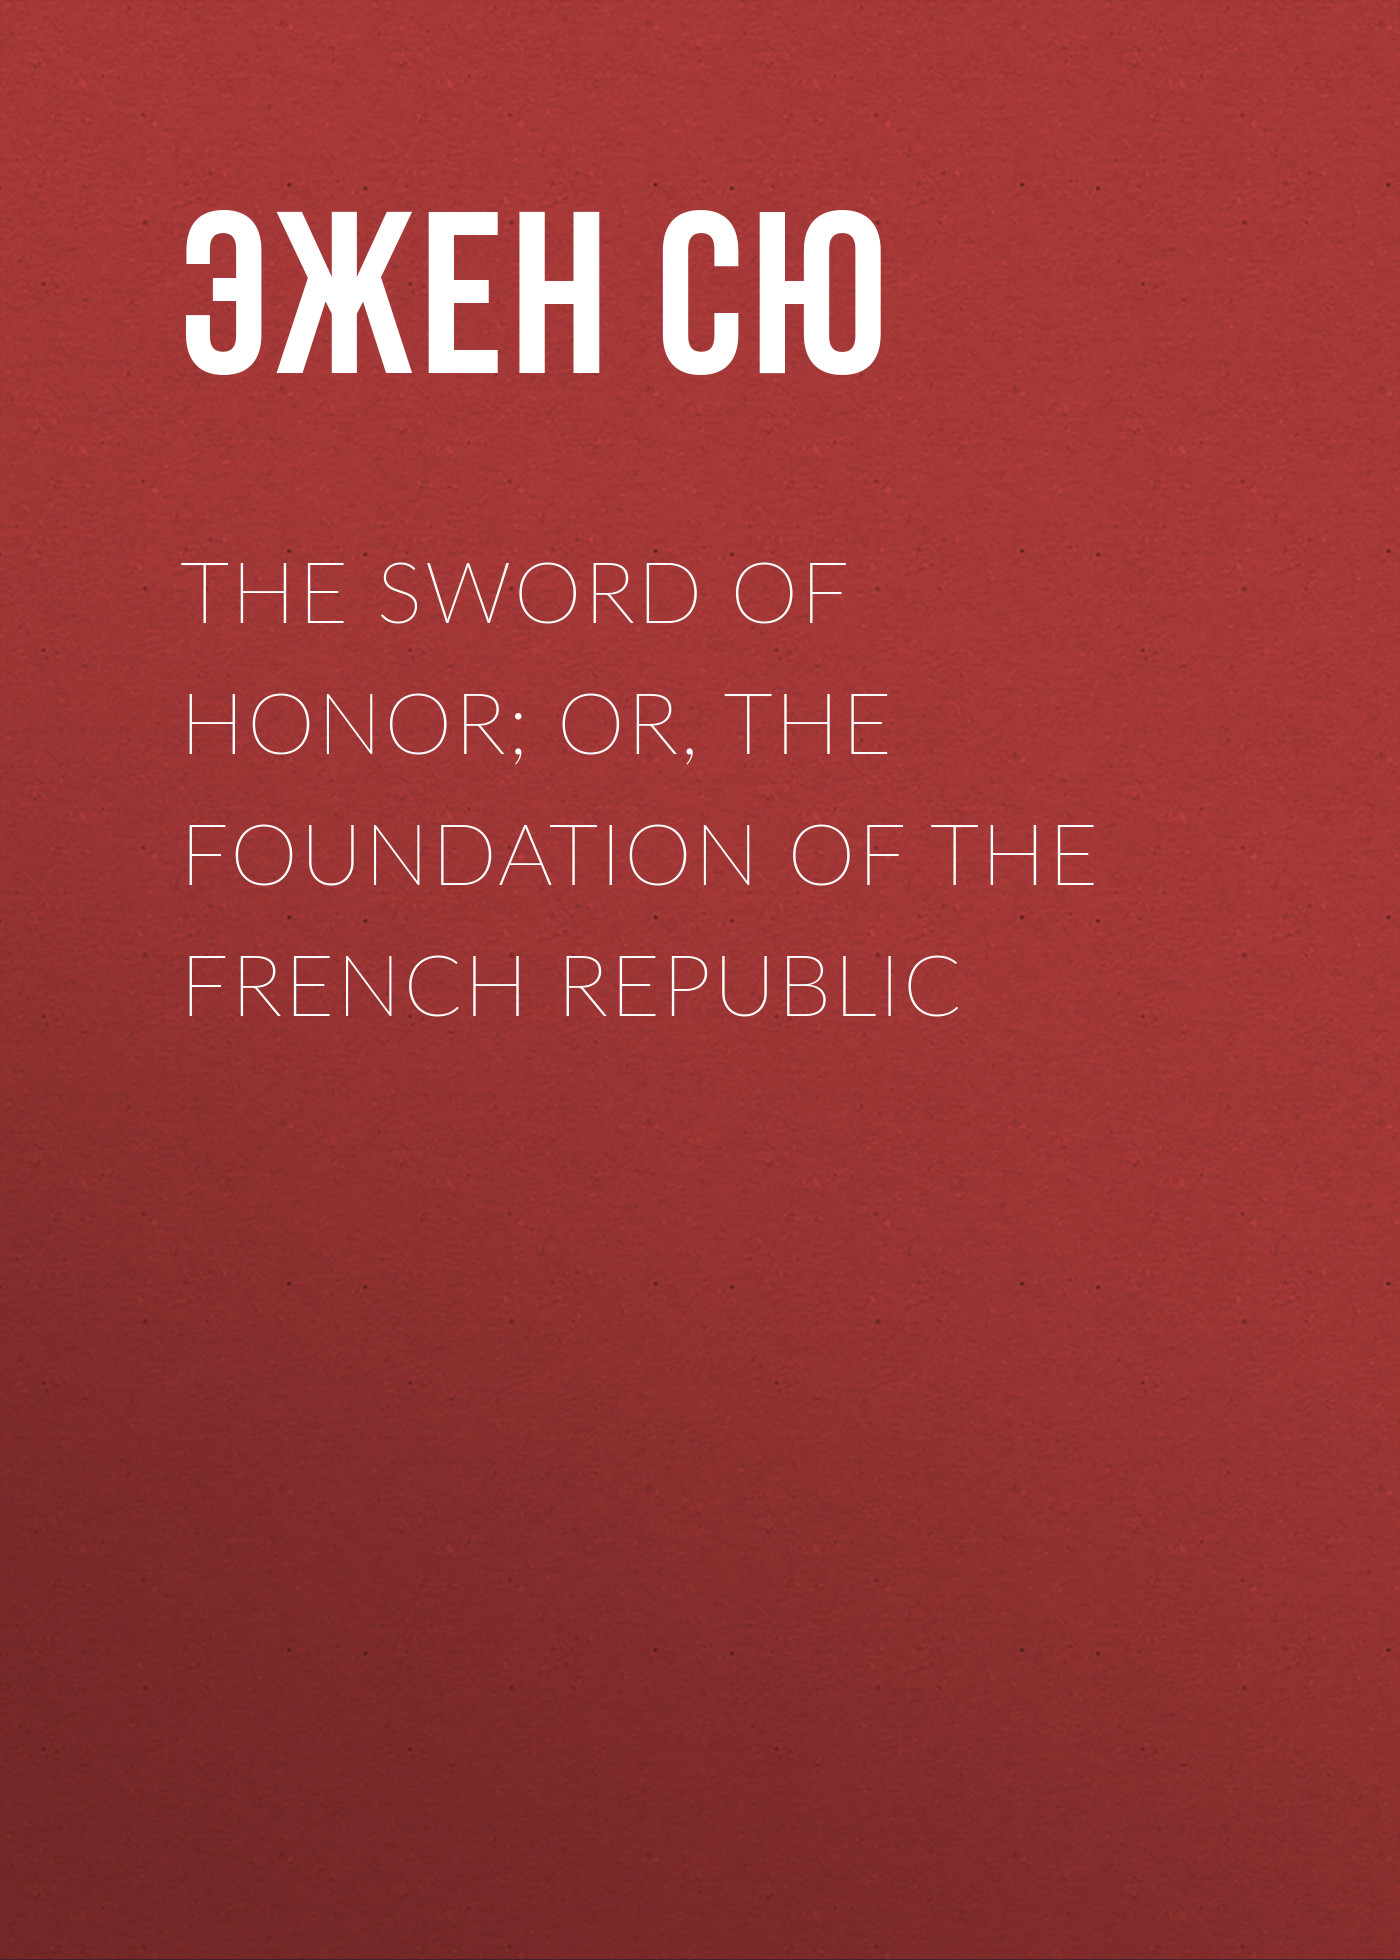 Фото - Эжен Сю The Sword of Honor; or, The Foundation of the French Republic эжен сю the gold sickle or hena the virgin of the isle of sen a tale of druid gaul